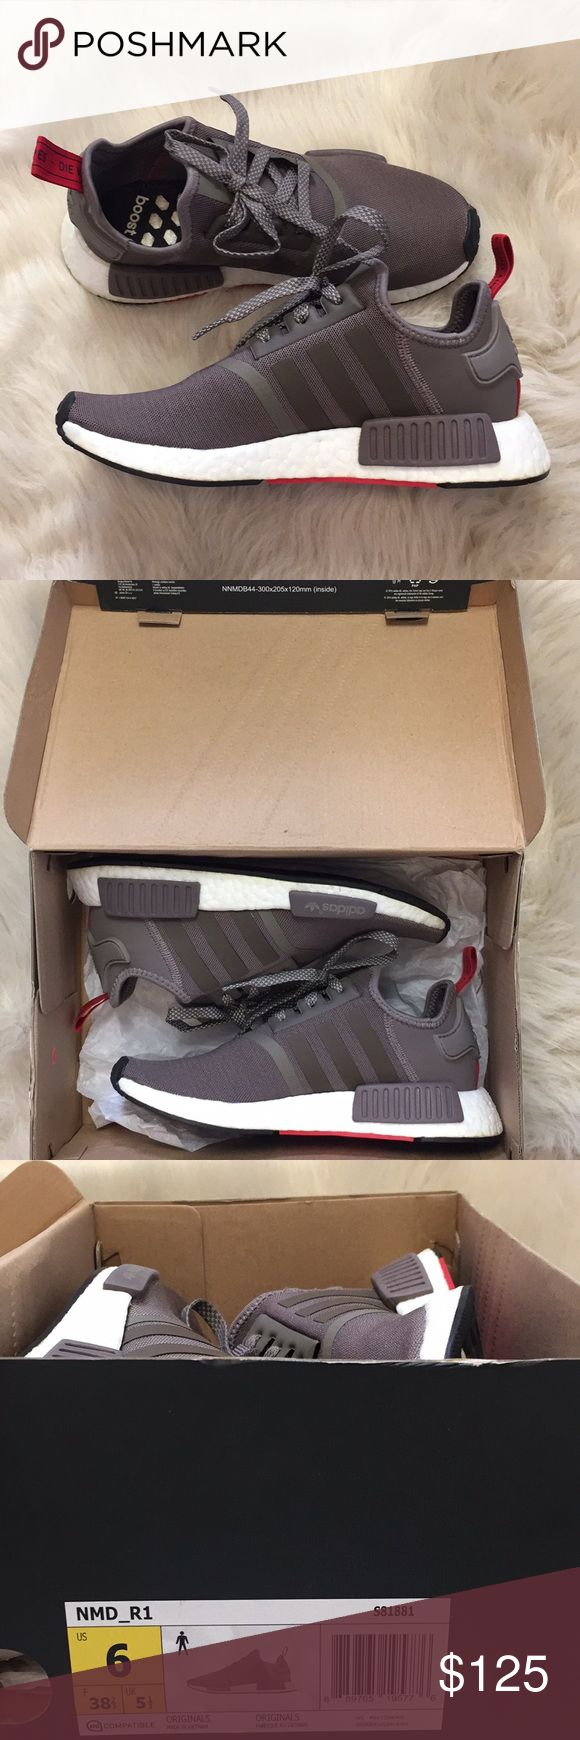 Adidas NMD R1 Authentic Adidas nmd's! Brand new with box. Size 6 women's. Taupe color adidas Shoes Sneakers